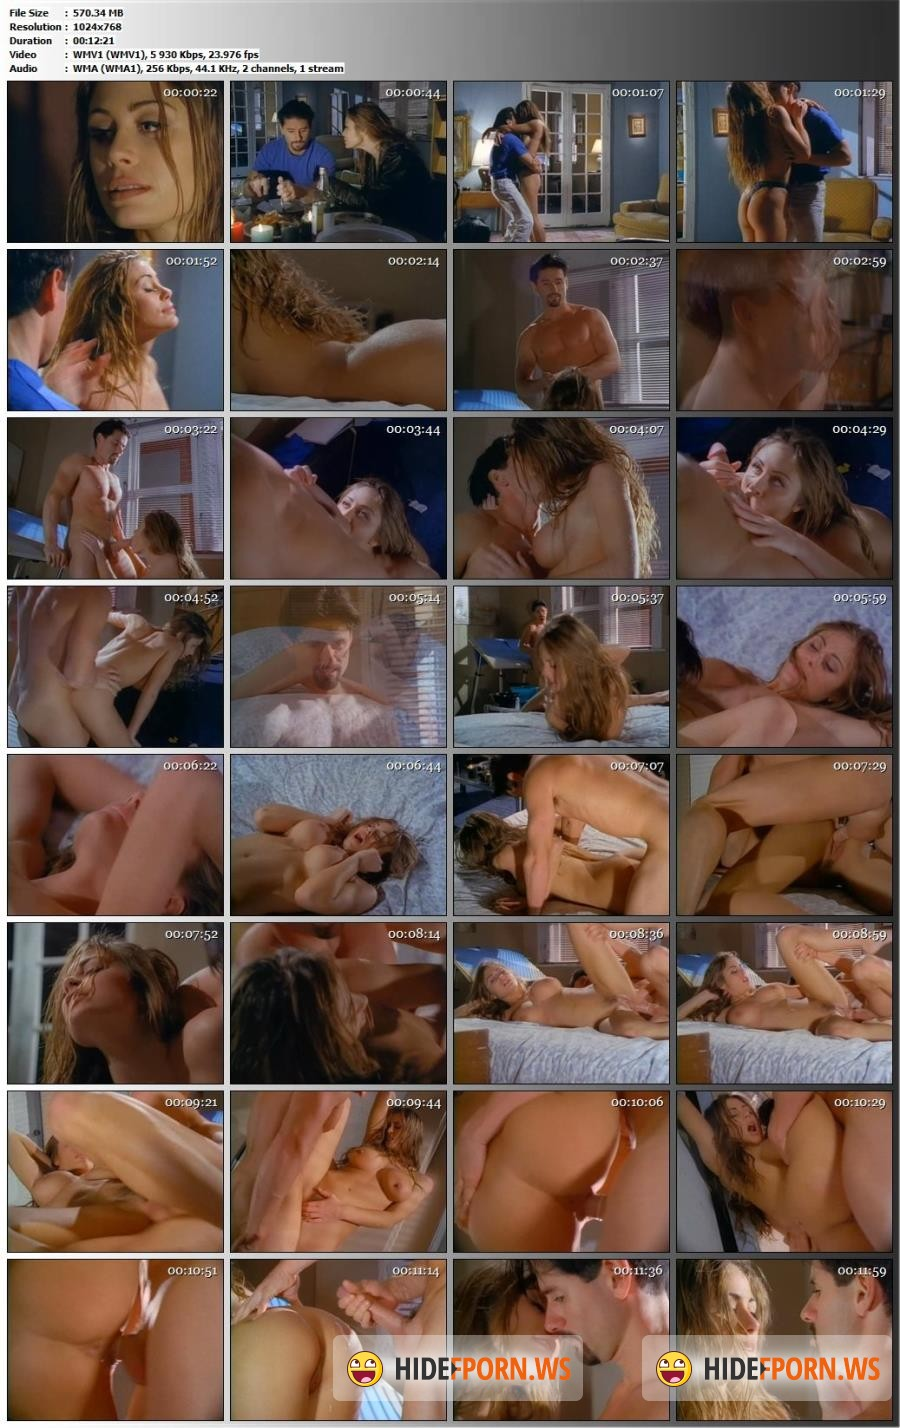 ChaseyLain.com - Chasey Lain - Romantic dinner with a chic friend [HD 768p]